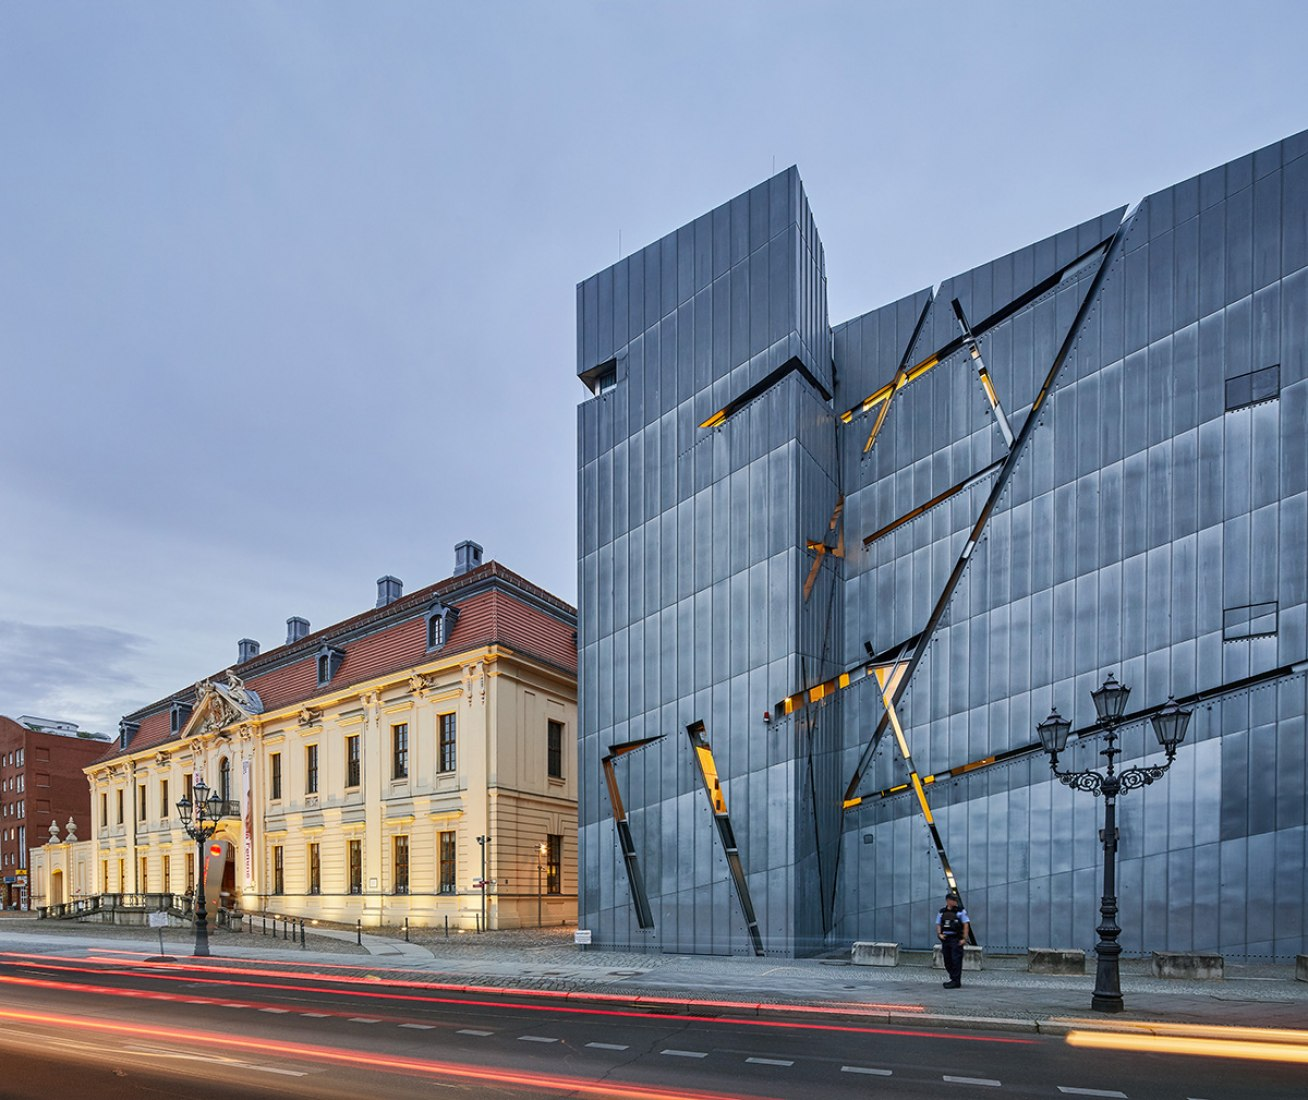 Jewish Museum in Berlin, Germany. Photograph © Hufton+Crow